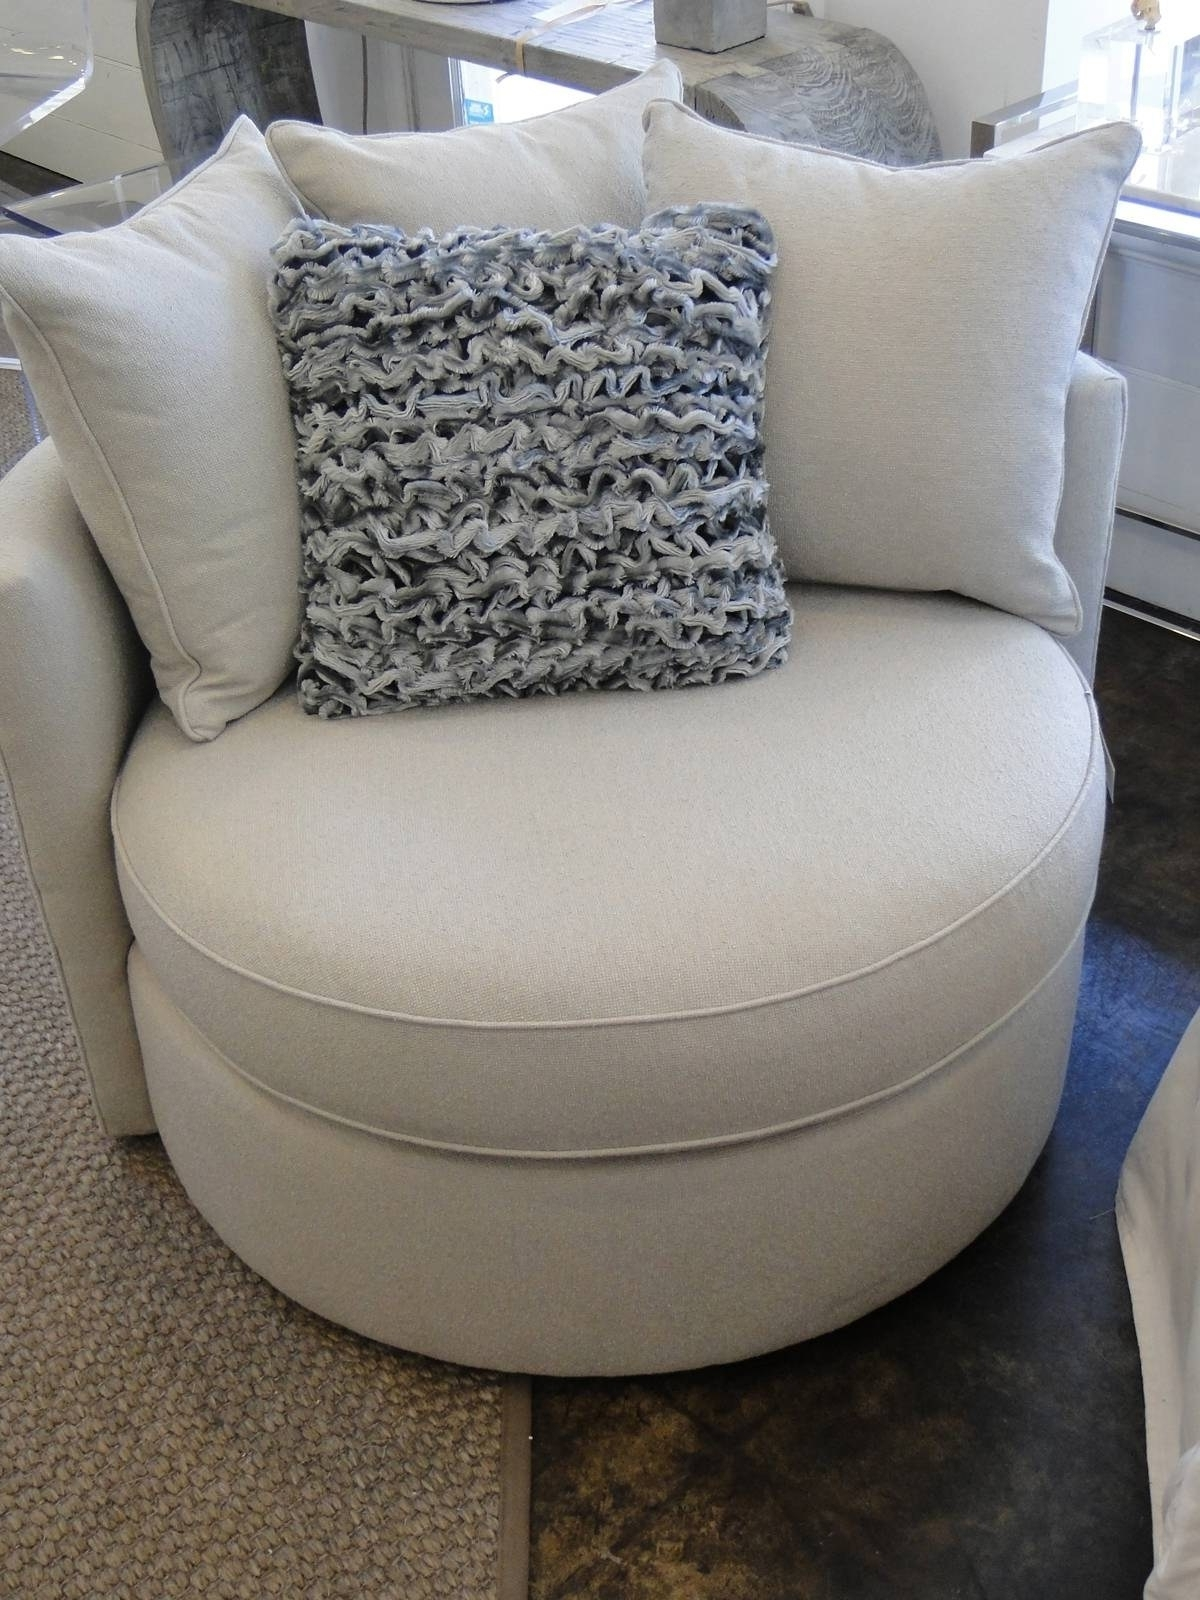 Favorite Round Swivel Sofa Chairs Intended For Inspirational Oversized Sofa Chair (37 Photos) (View 3 of 20)